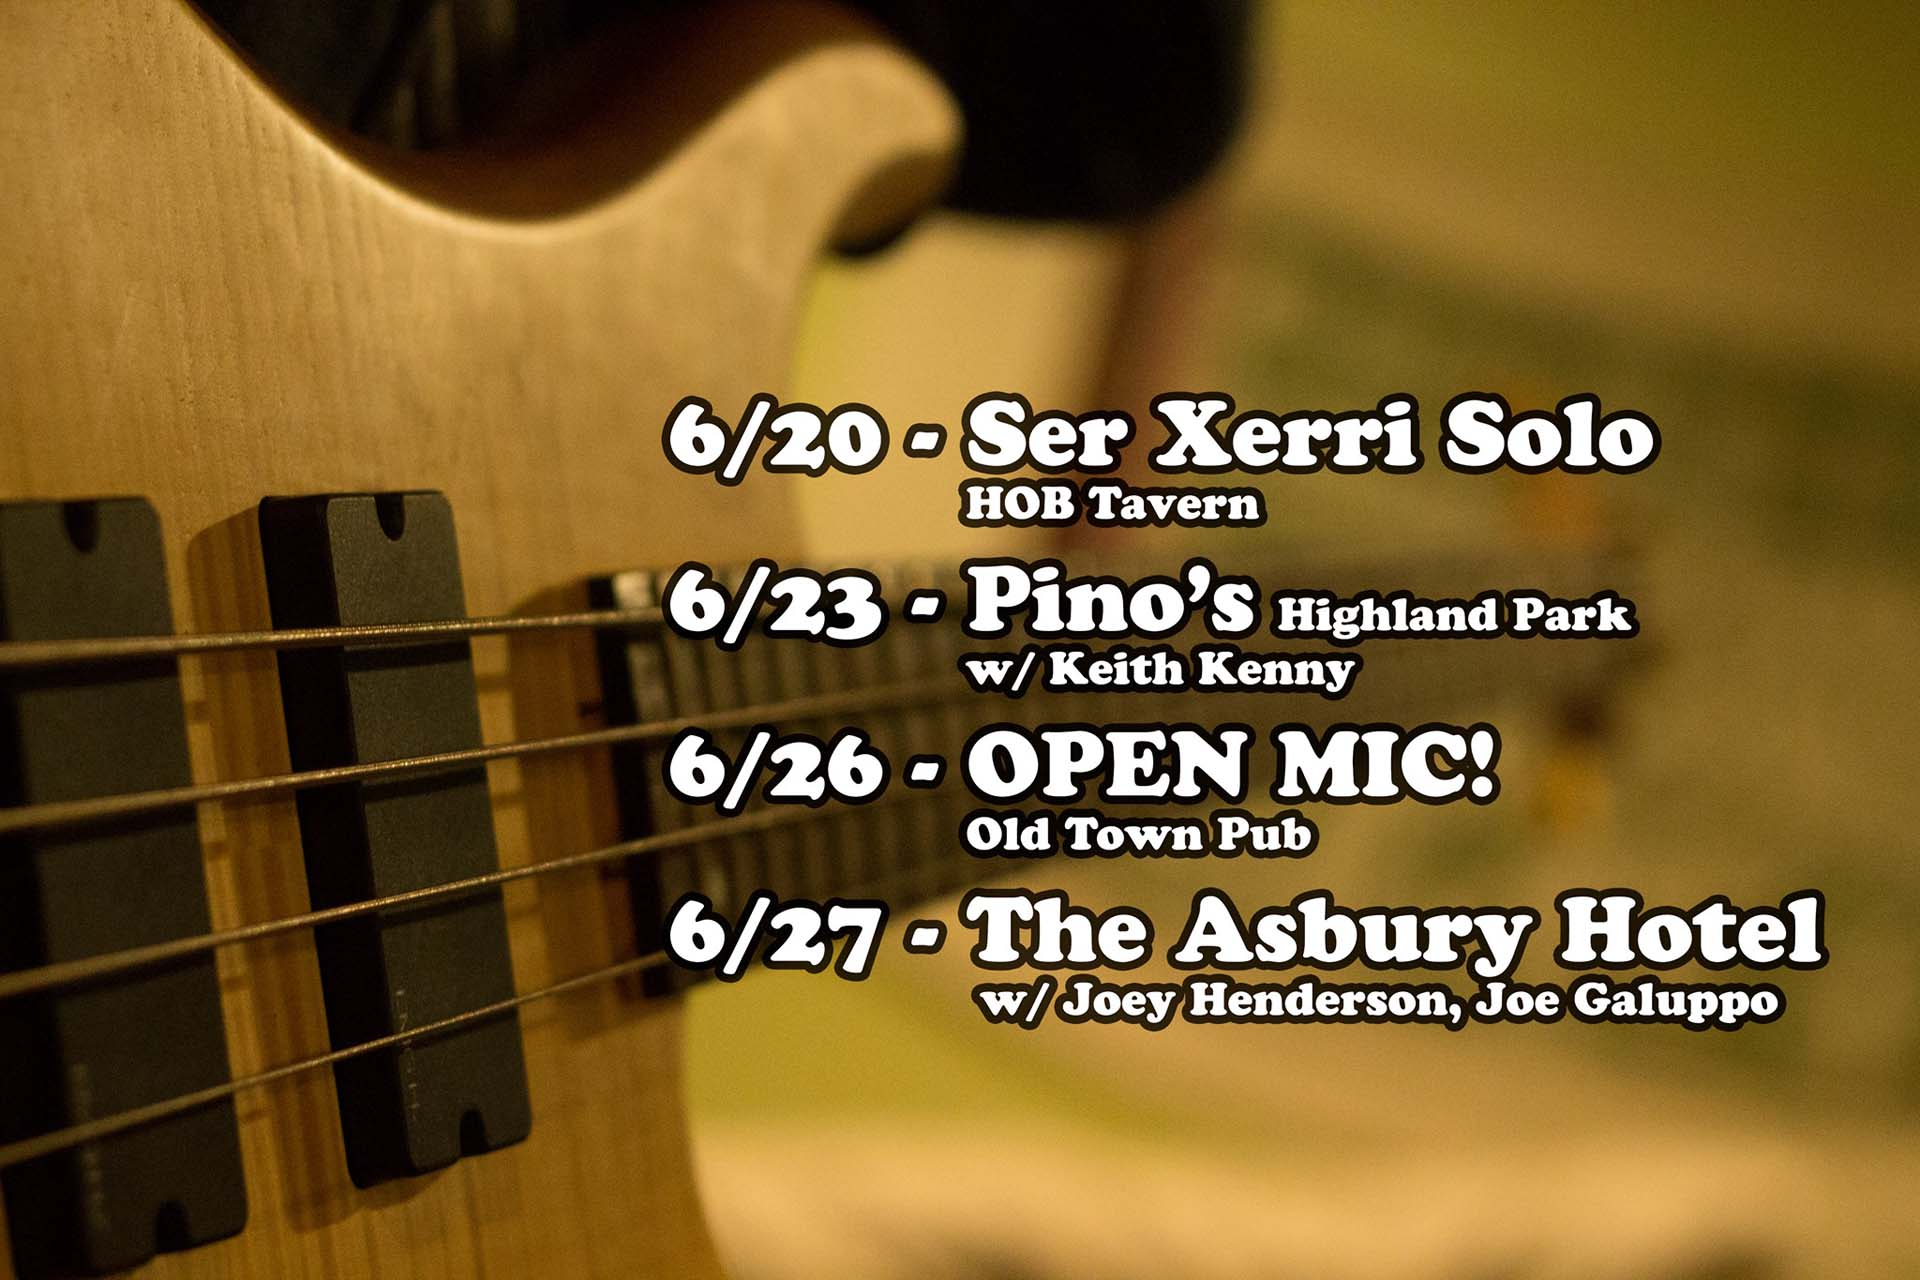 Ser Xerri show dates June 2018.jpg